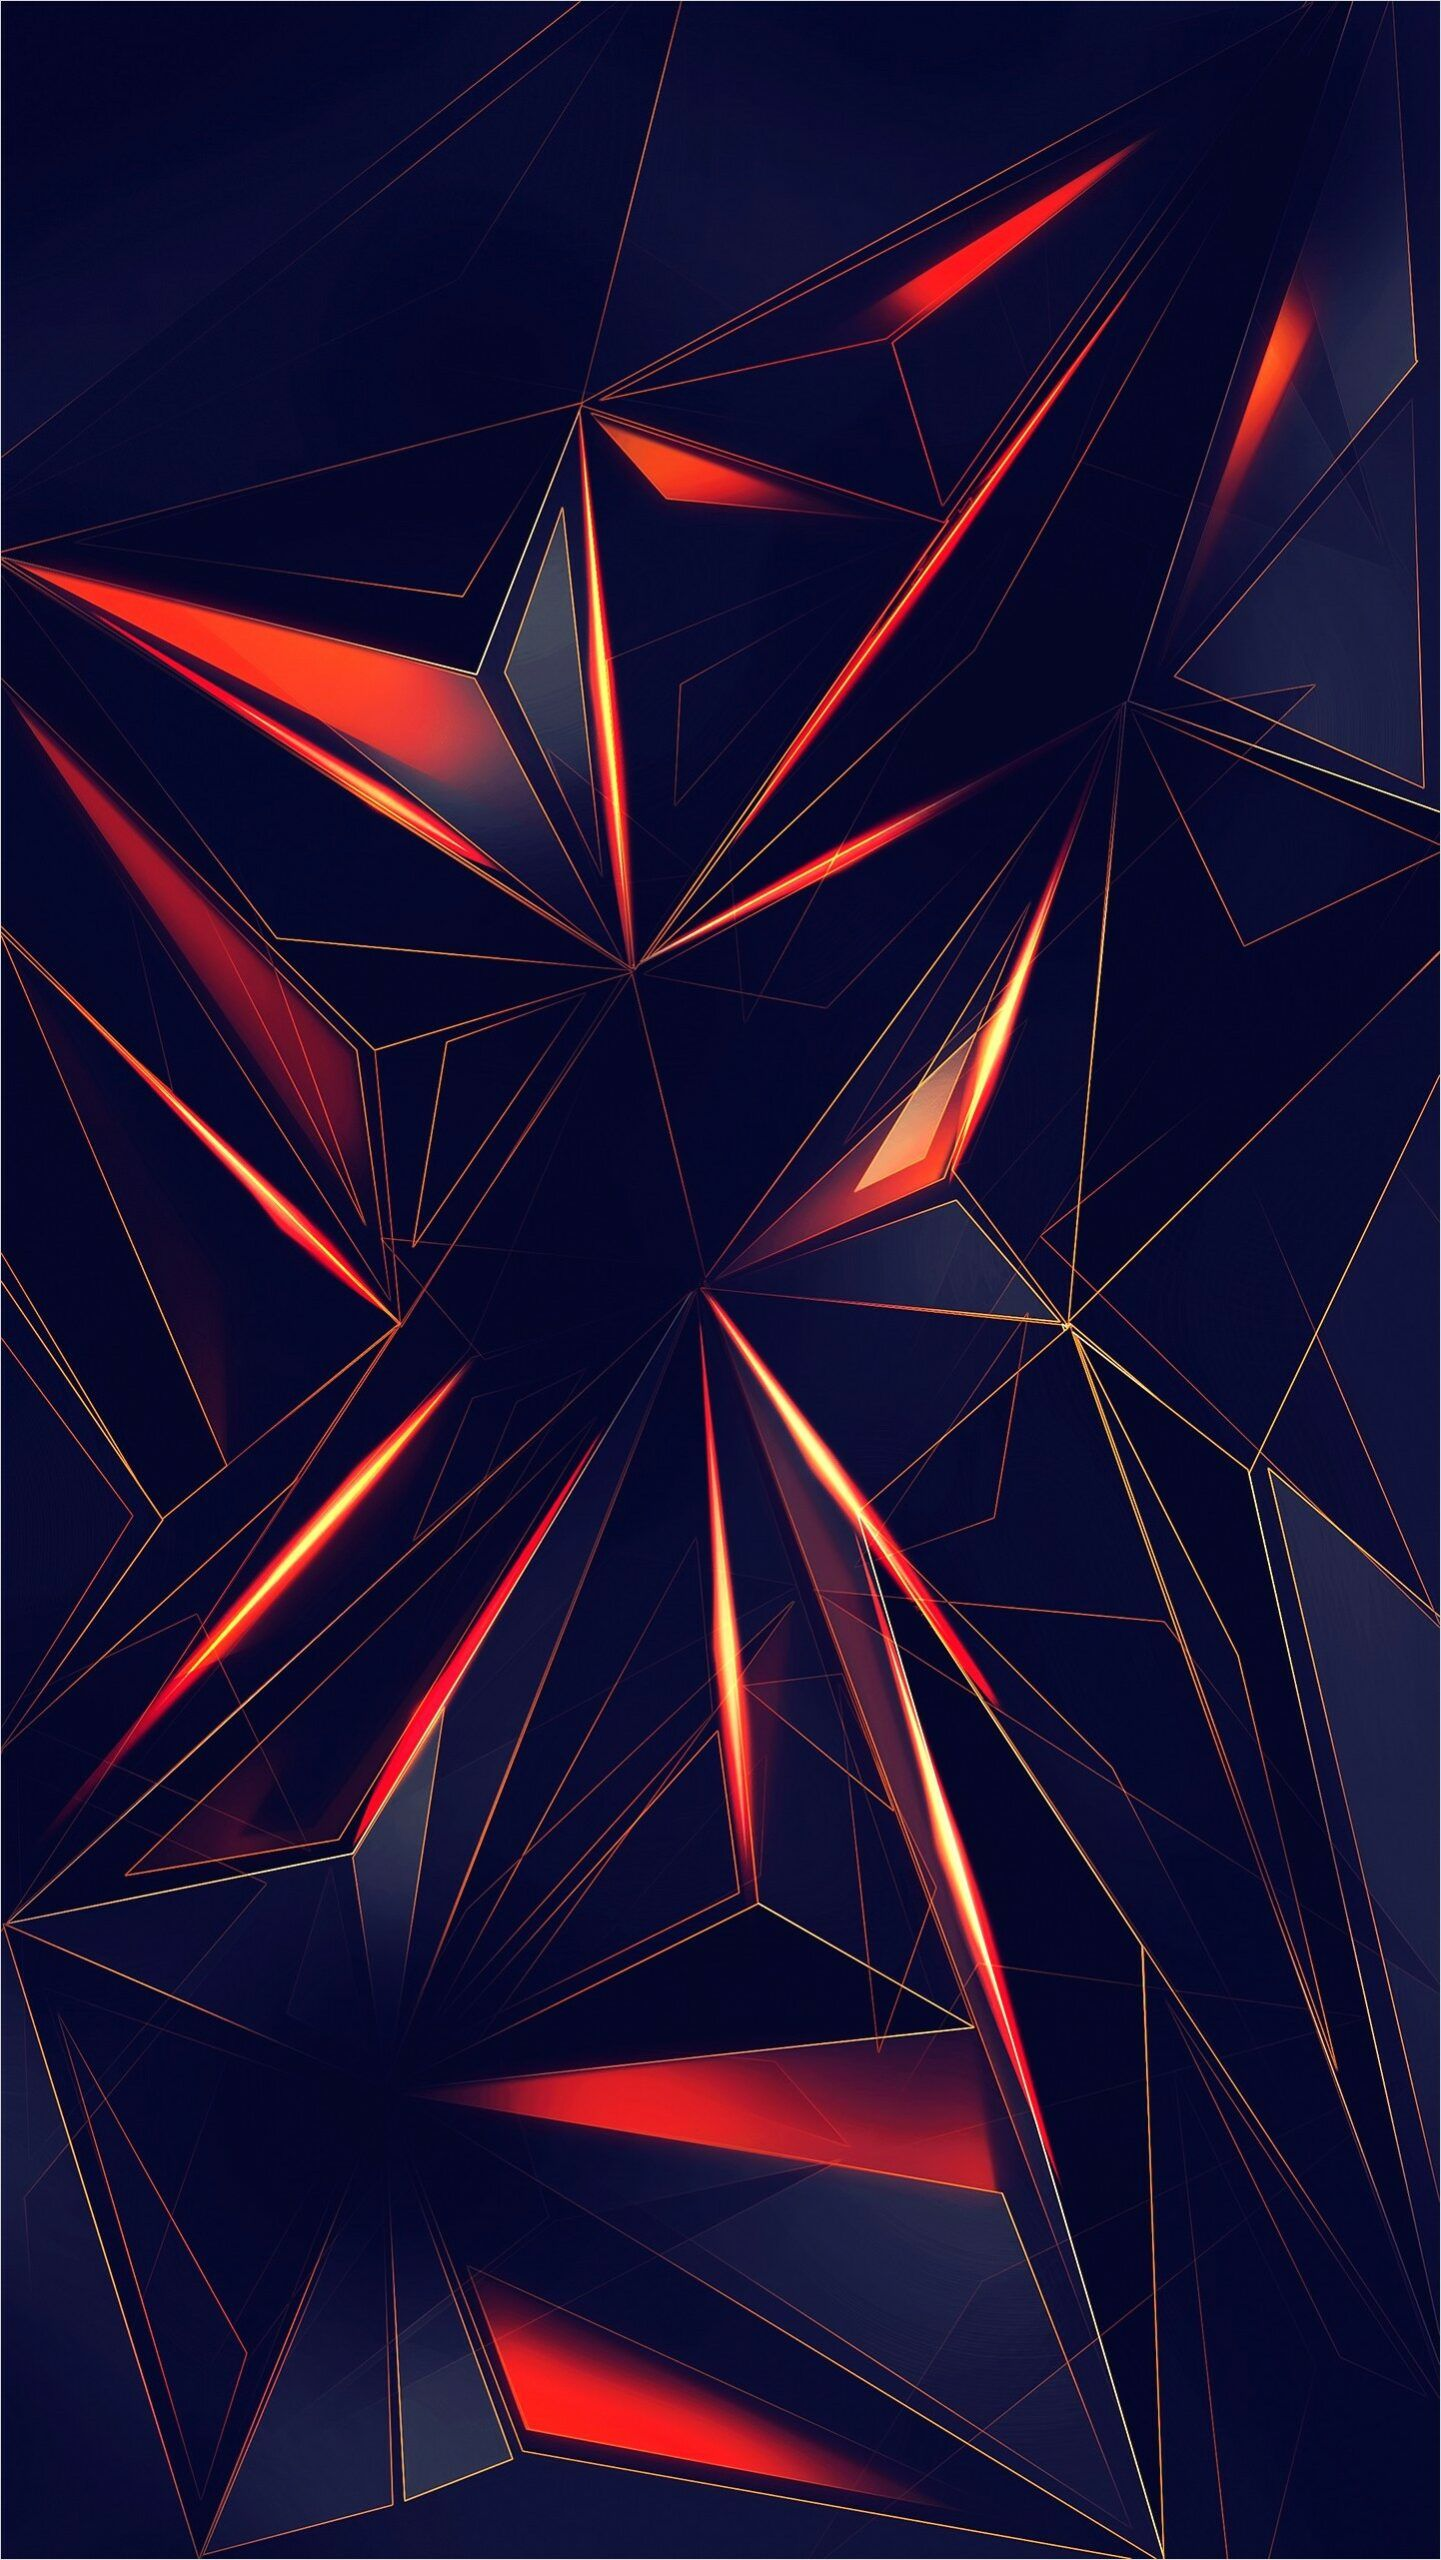 3d Geometric Wallpapers 4k In 2020 Geometric Wallpaper 4k Geometric Wallpaper 3d Wallpaper